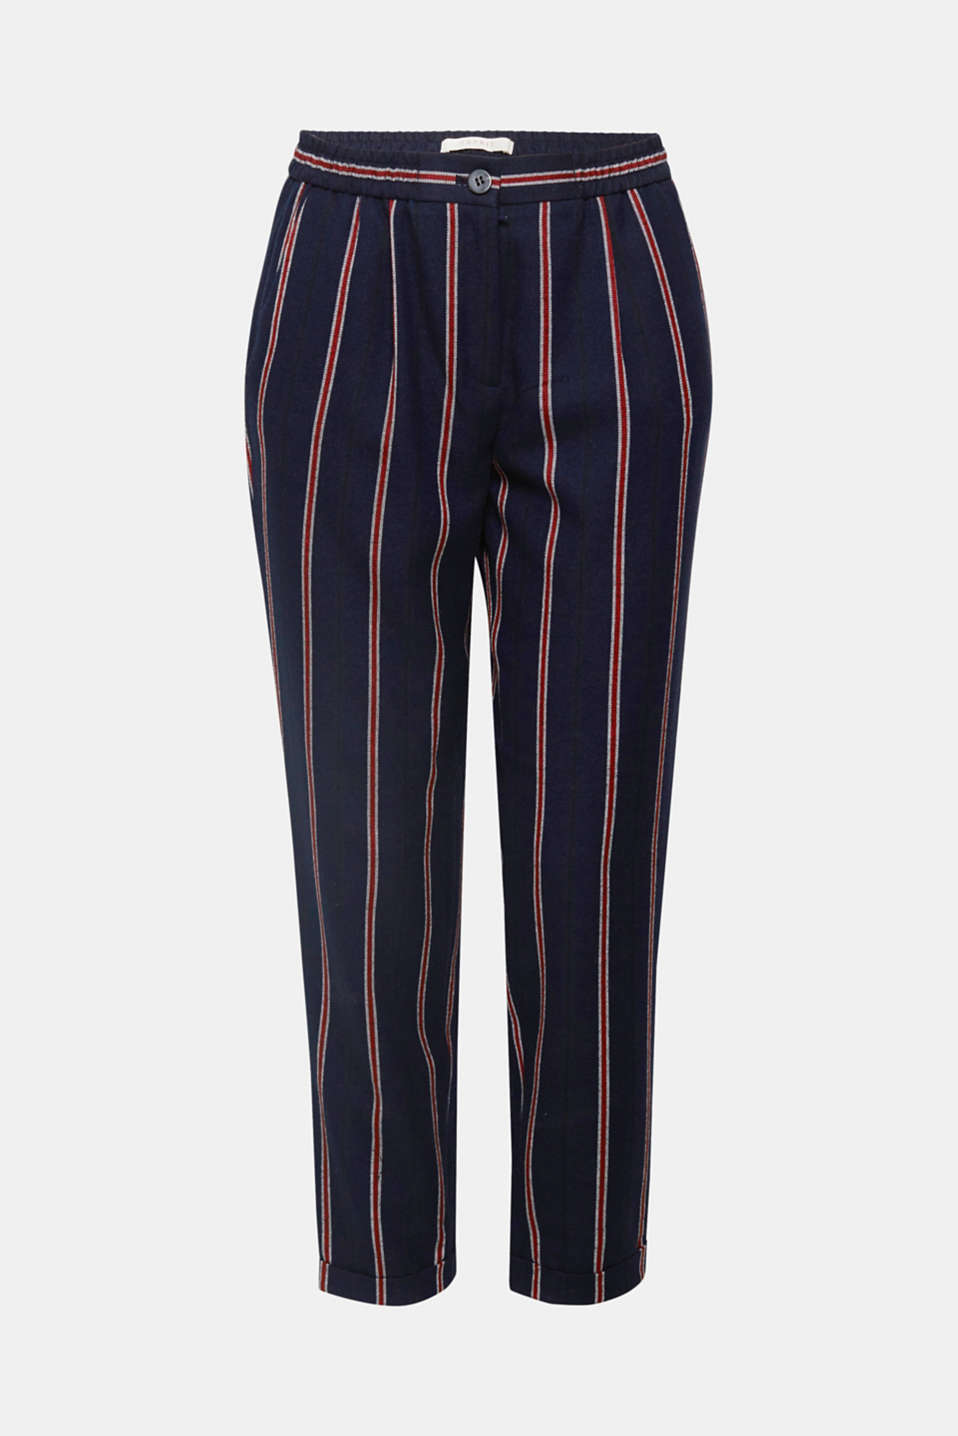 Stripes show their colours – on these soft flannel trousers in a comfortable tracksuit bottoms style with fixed turn-up hems.